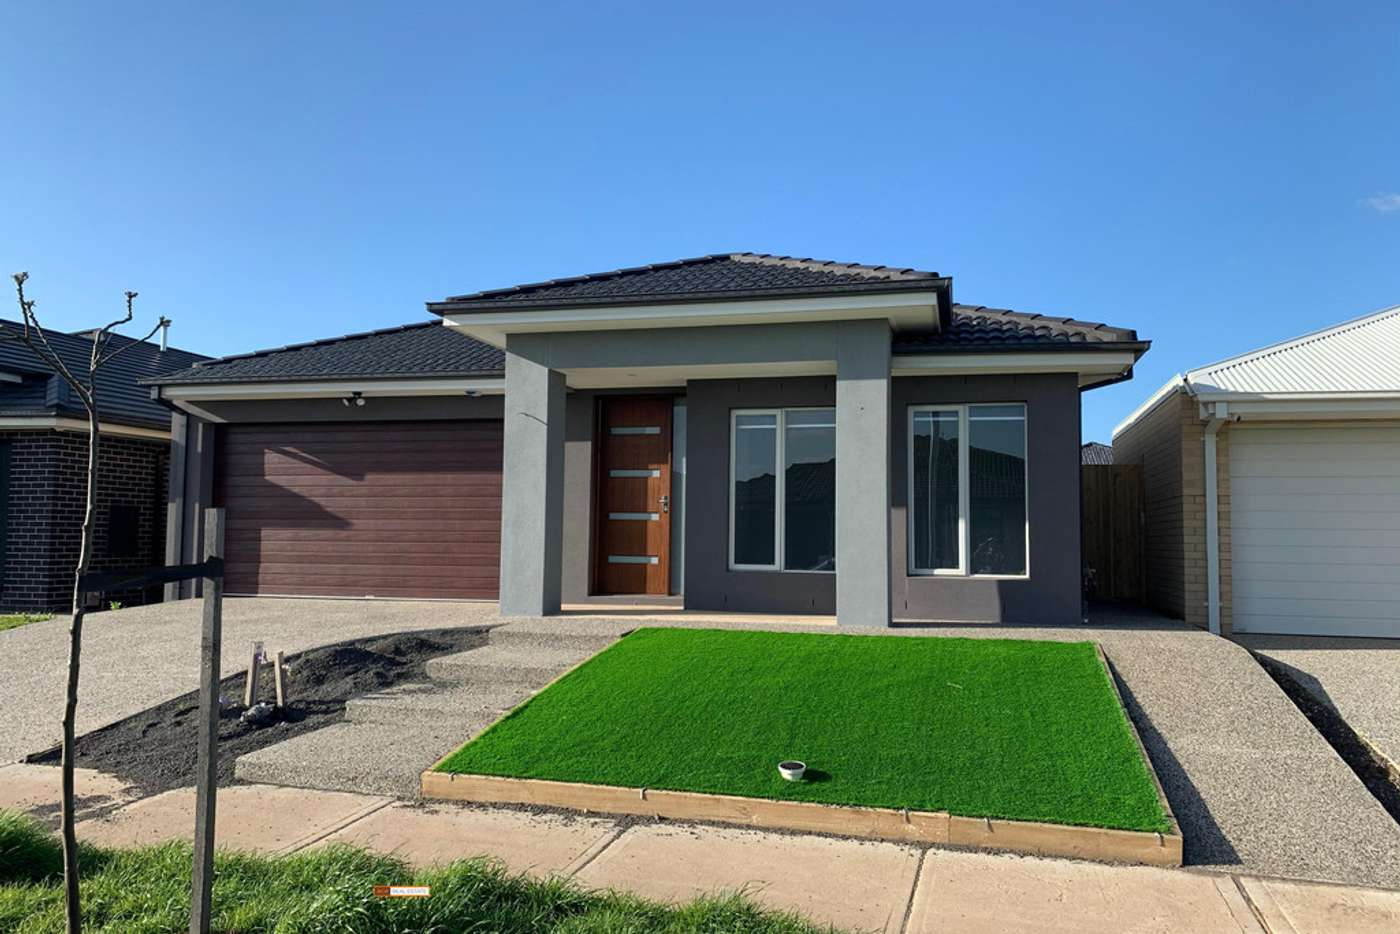 Main view of Homely house listing, 9 Hounslow Drive, Wyndham Vale VIC 3024